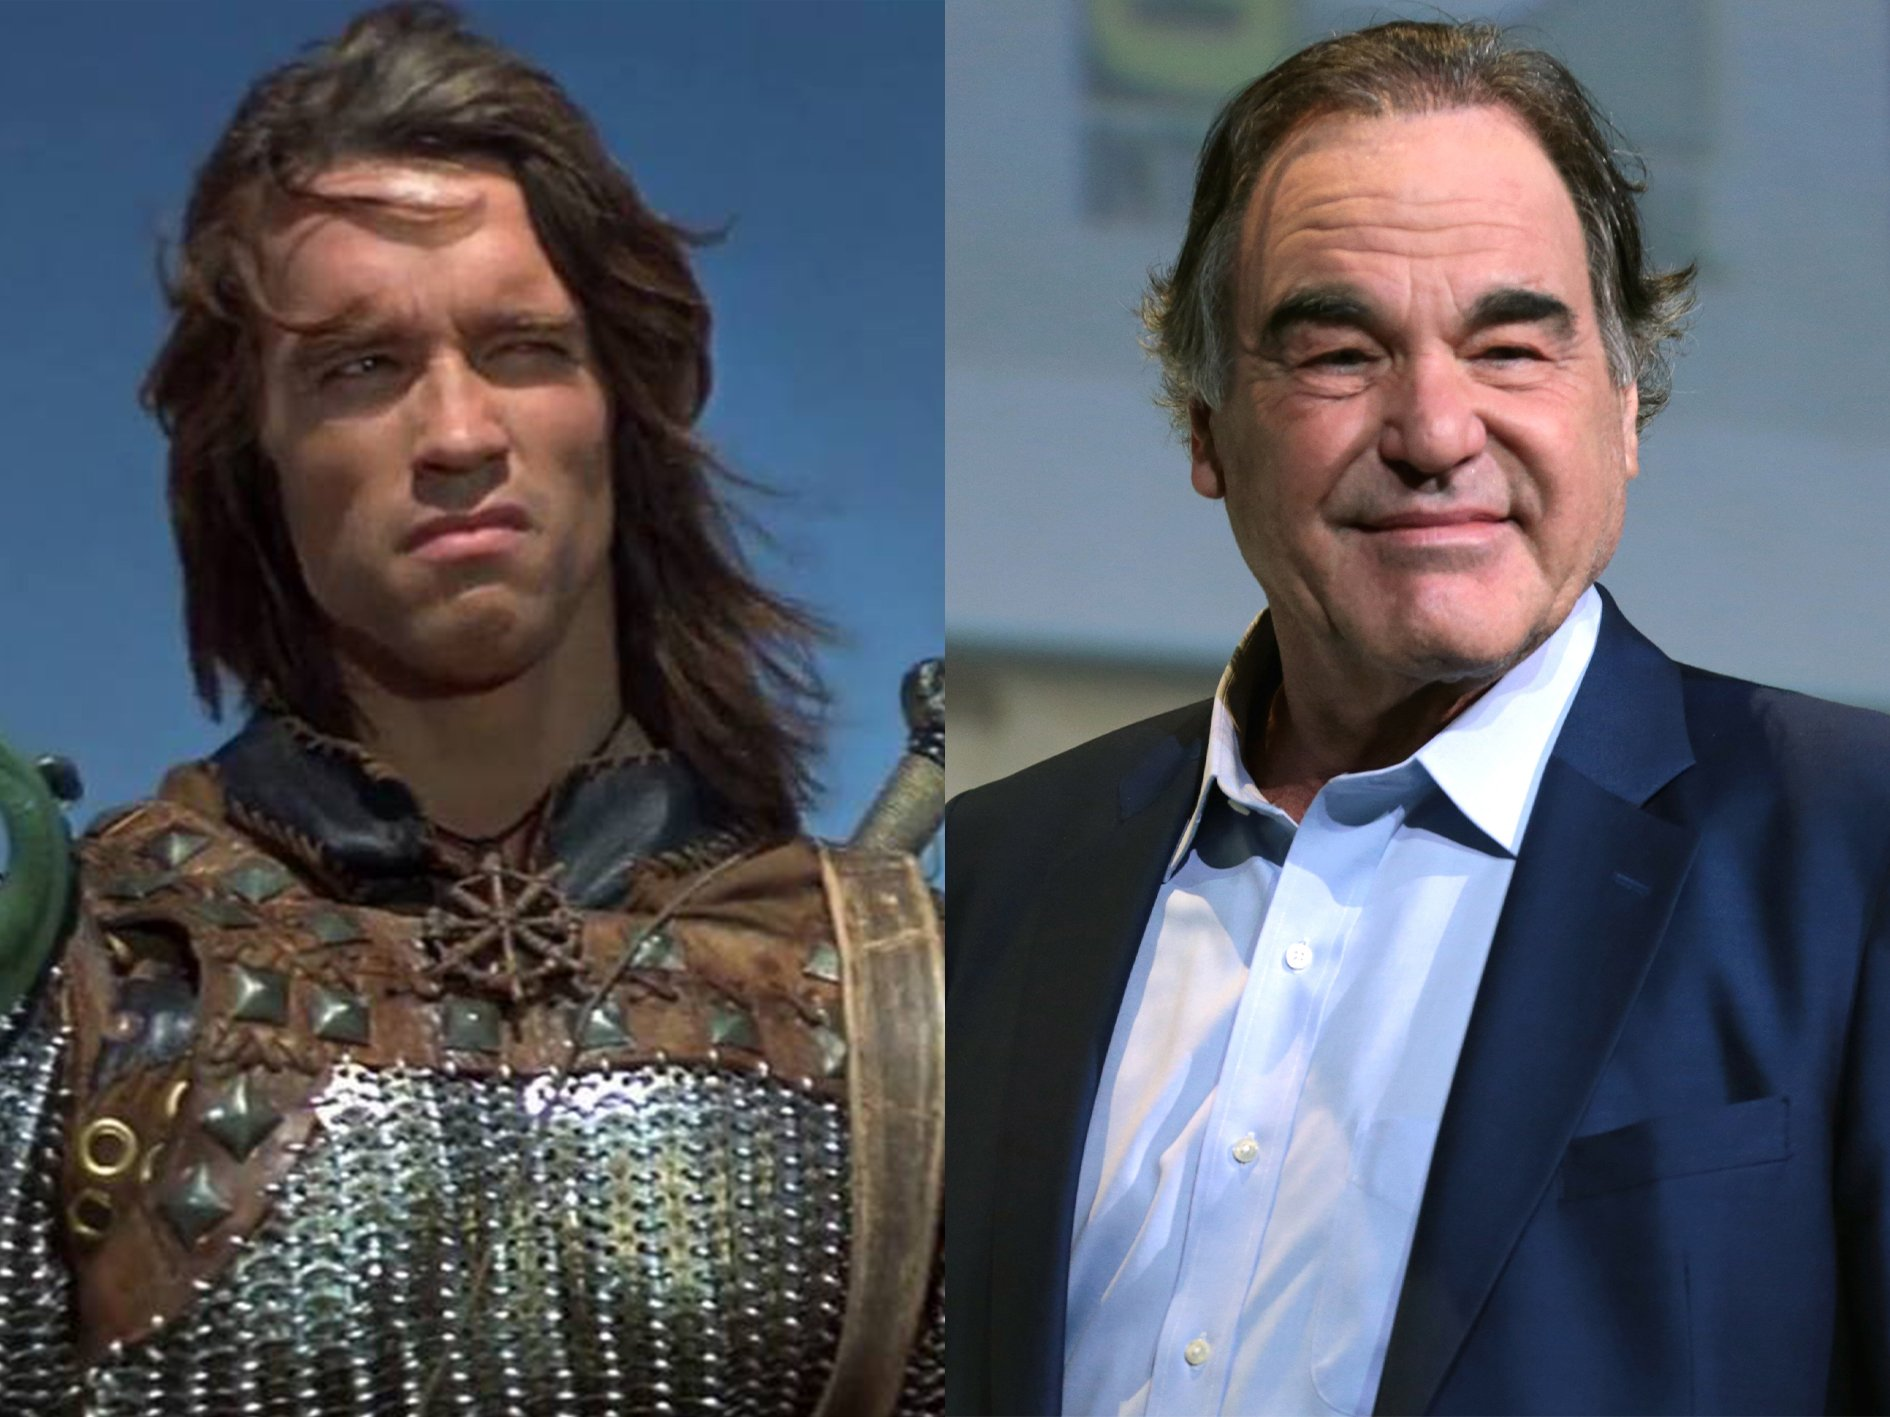 Conan the Barbarian Oliver Stone Crush Your Enemies With These 10 Facts About Conan The Barbarian